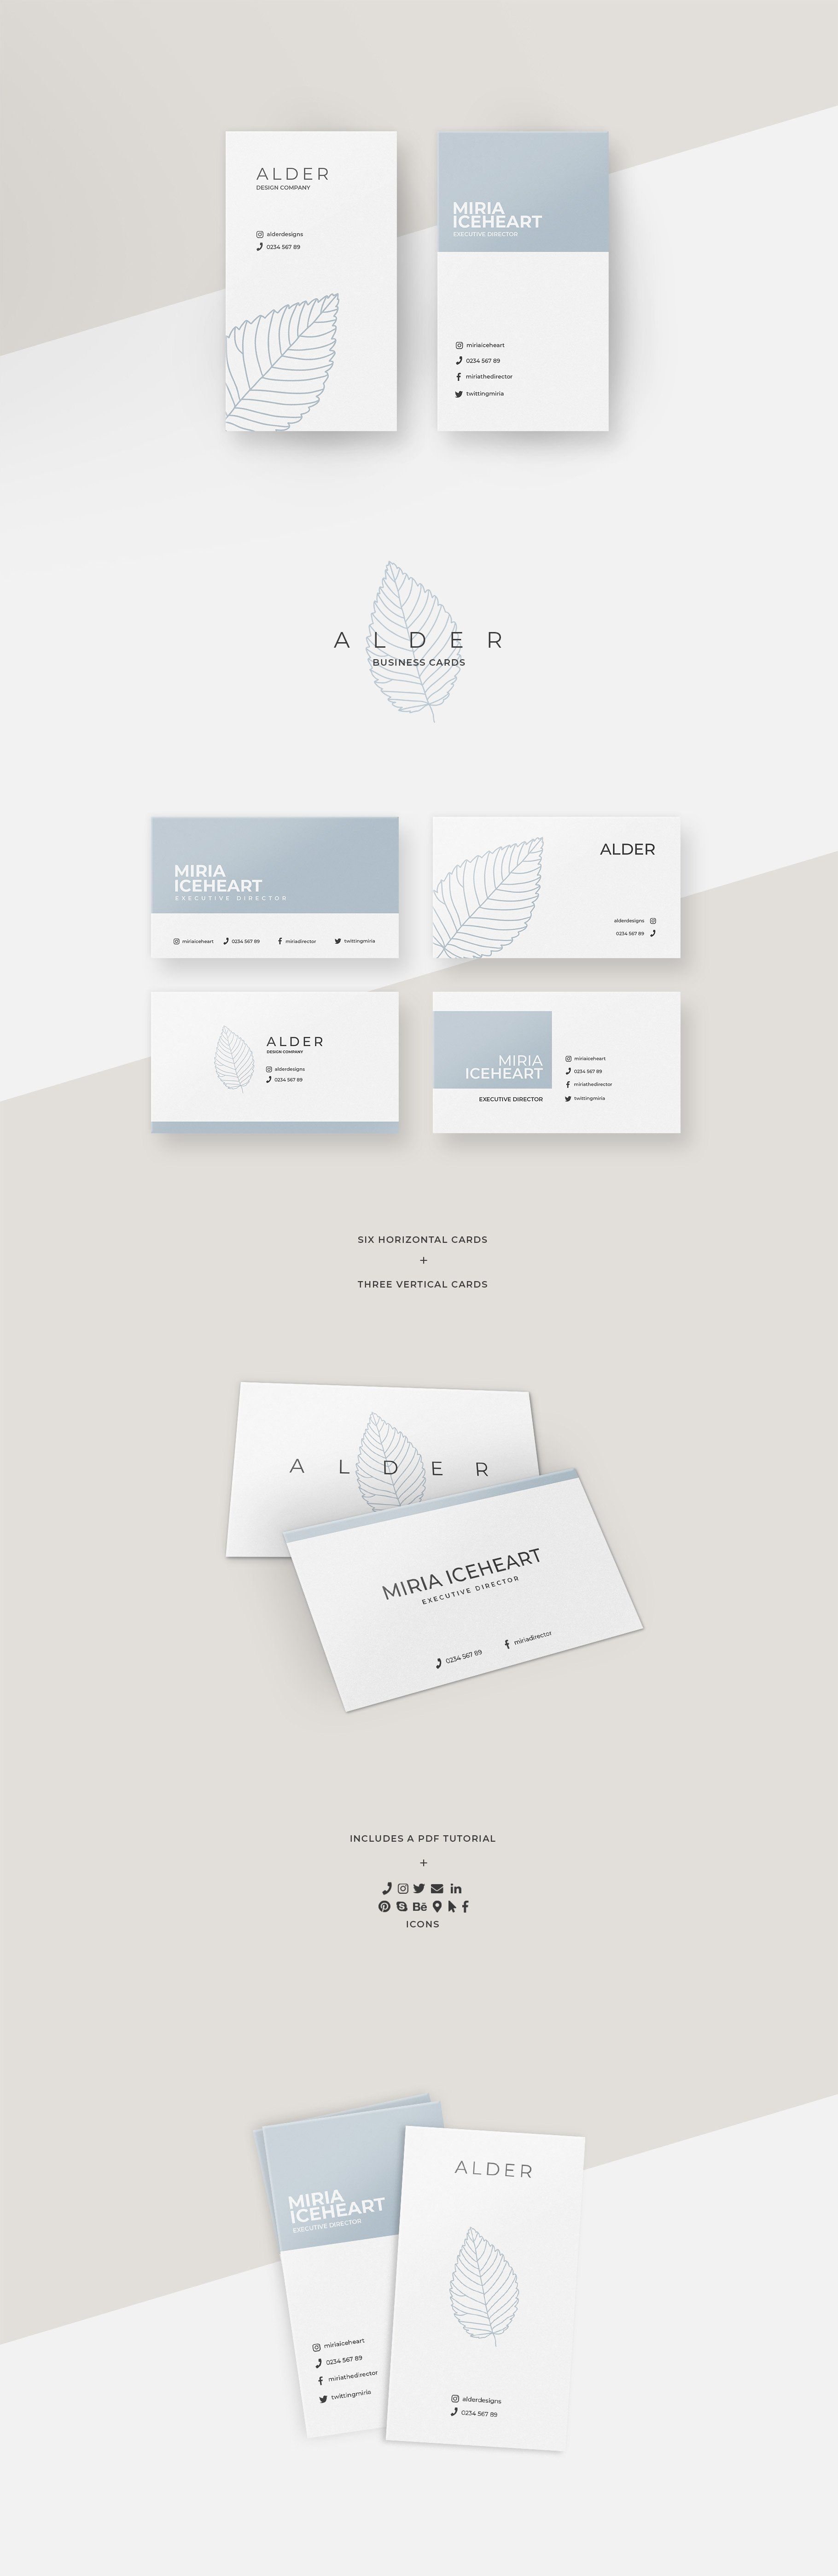 Alder Business Card Templates In 2020 Vertical Business Card Template Business Cards Creative Templates Business Card Inspiration